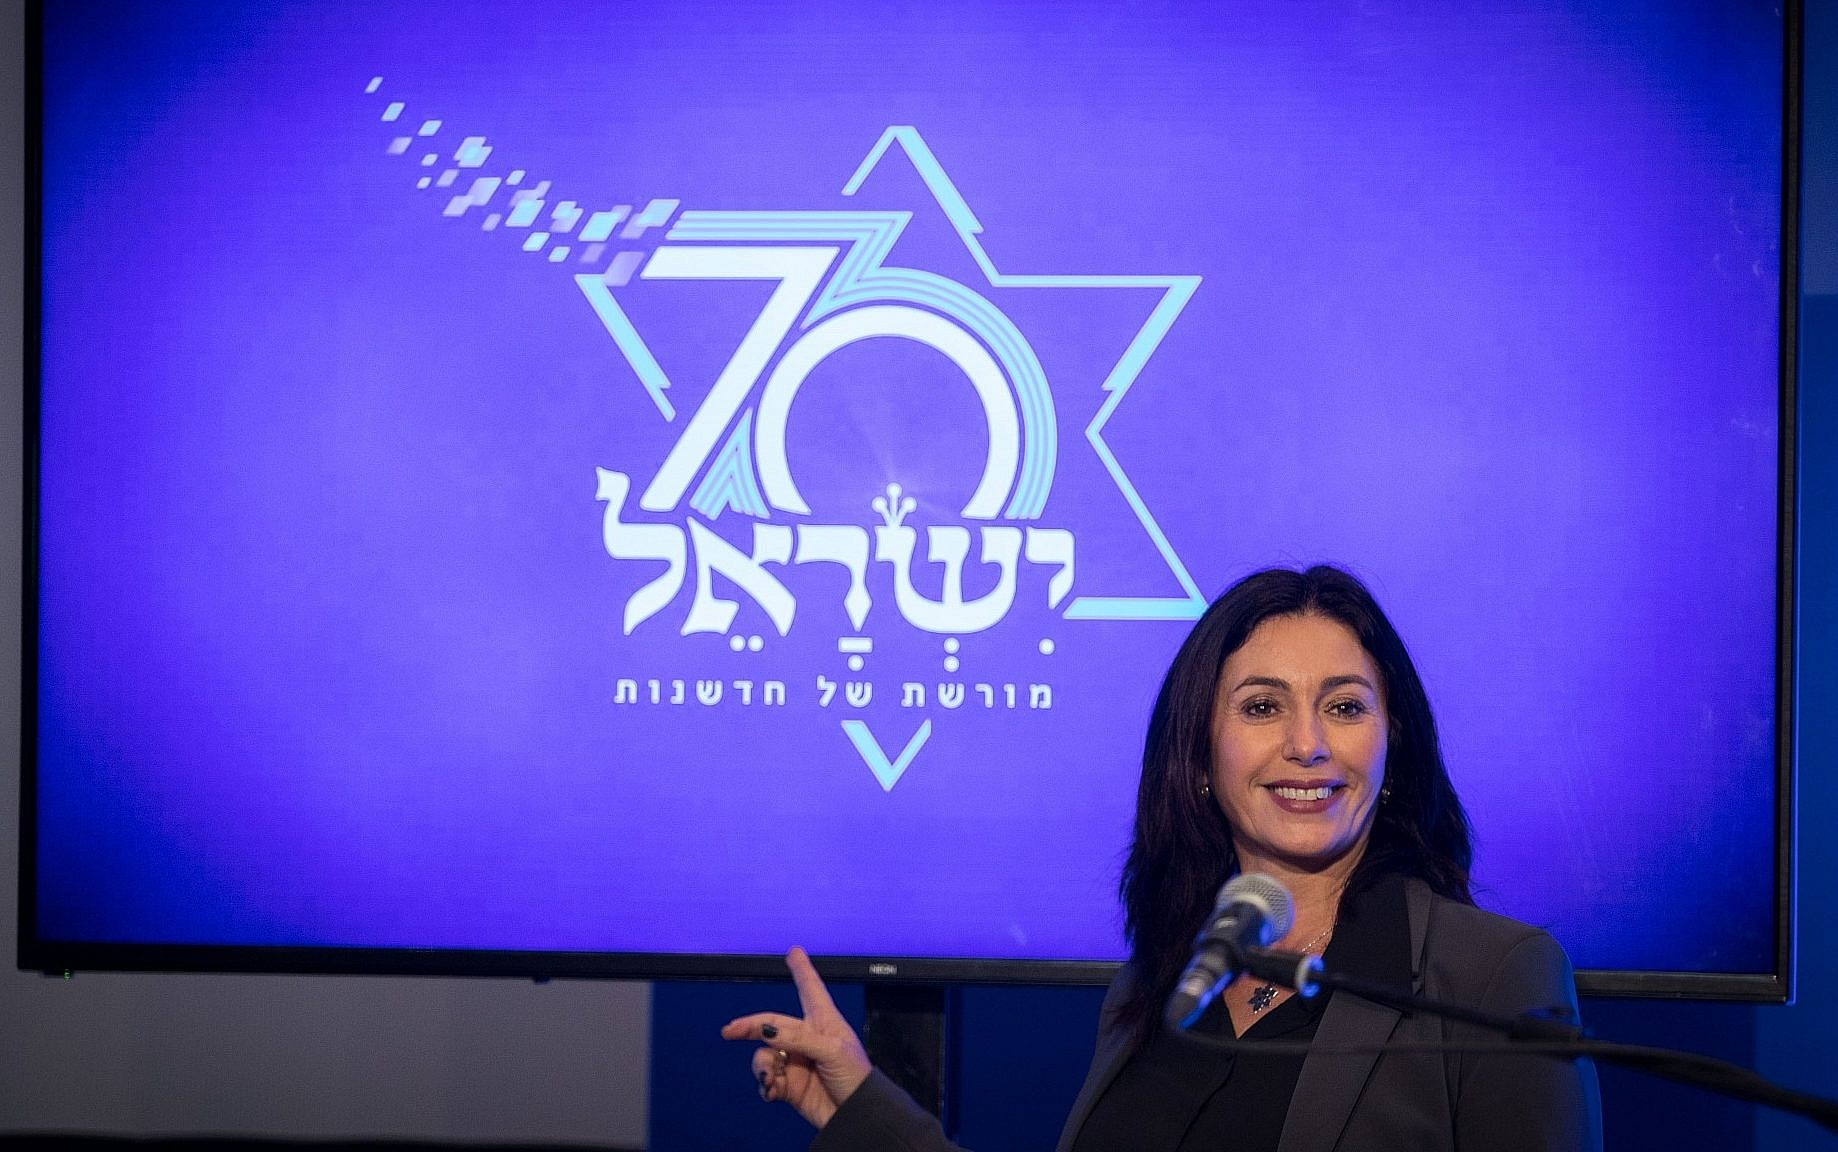 Media Tv Hannover Israel To Celebrate 70th Birthday With 70 Hour Spectacle The